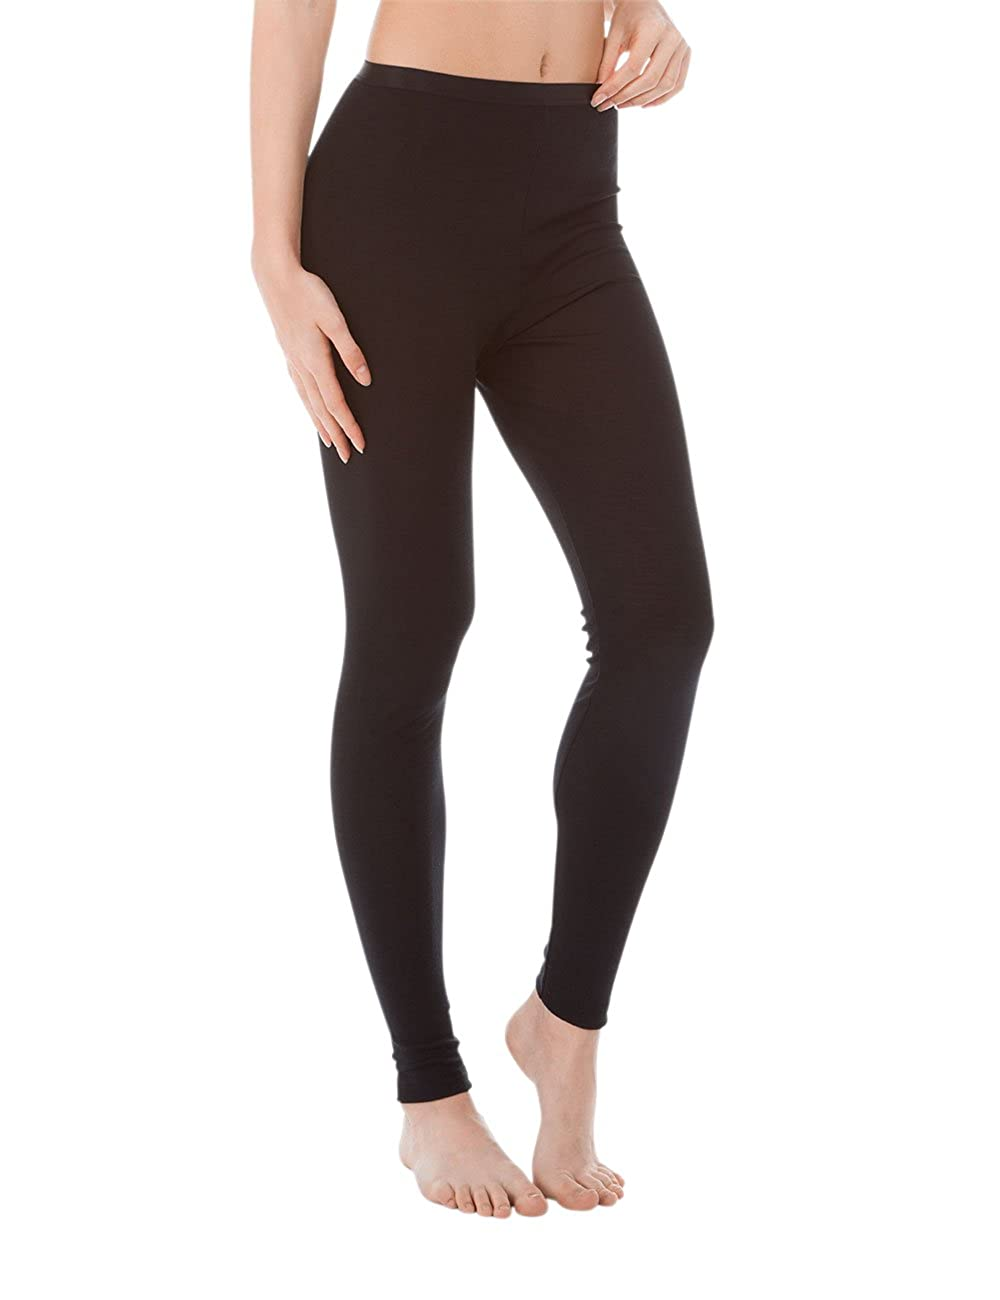 Calida True Confidence Damen Leggings, Pantaloni Termici Donna 27435